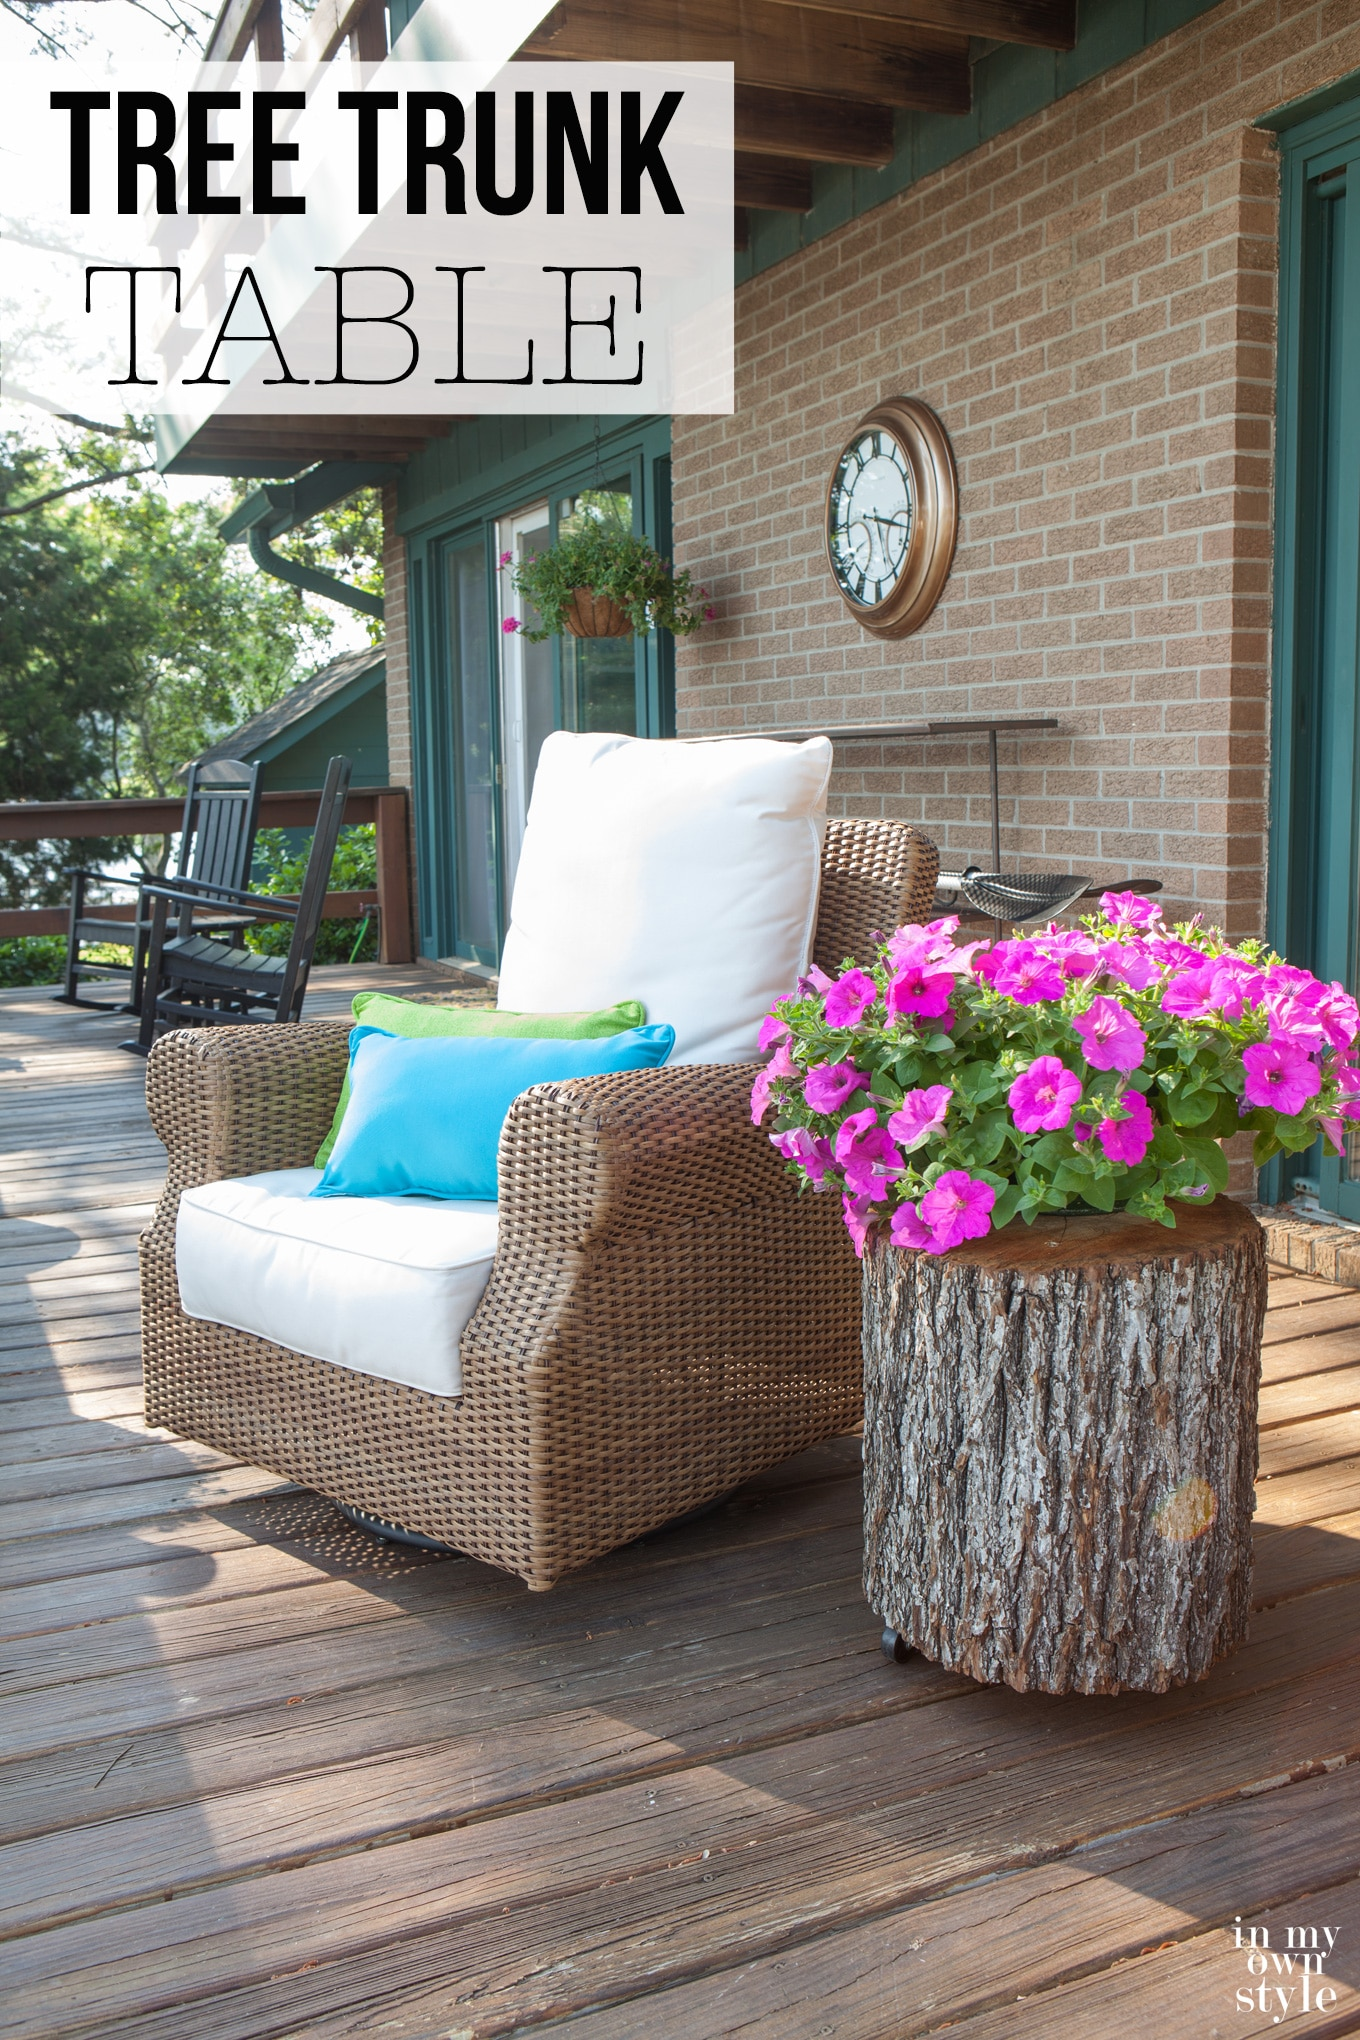 Rattan chair and tree trunk side table on deck. Graphic overlay says How to make a tree trunk table.